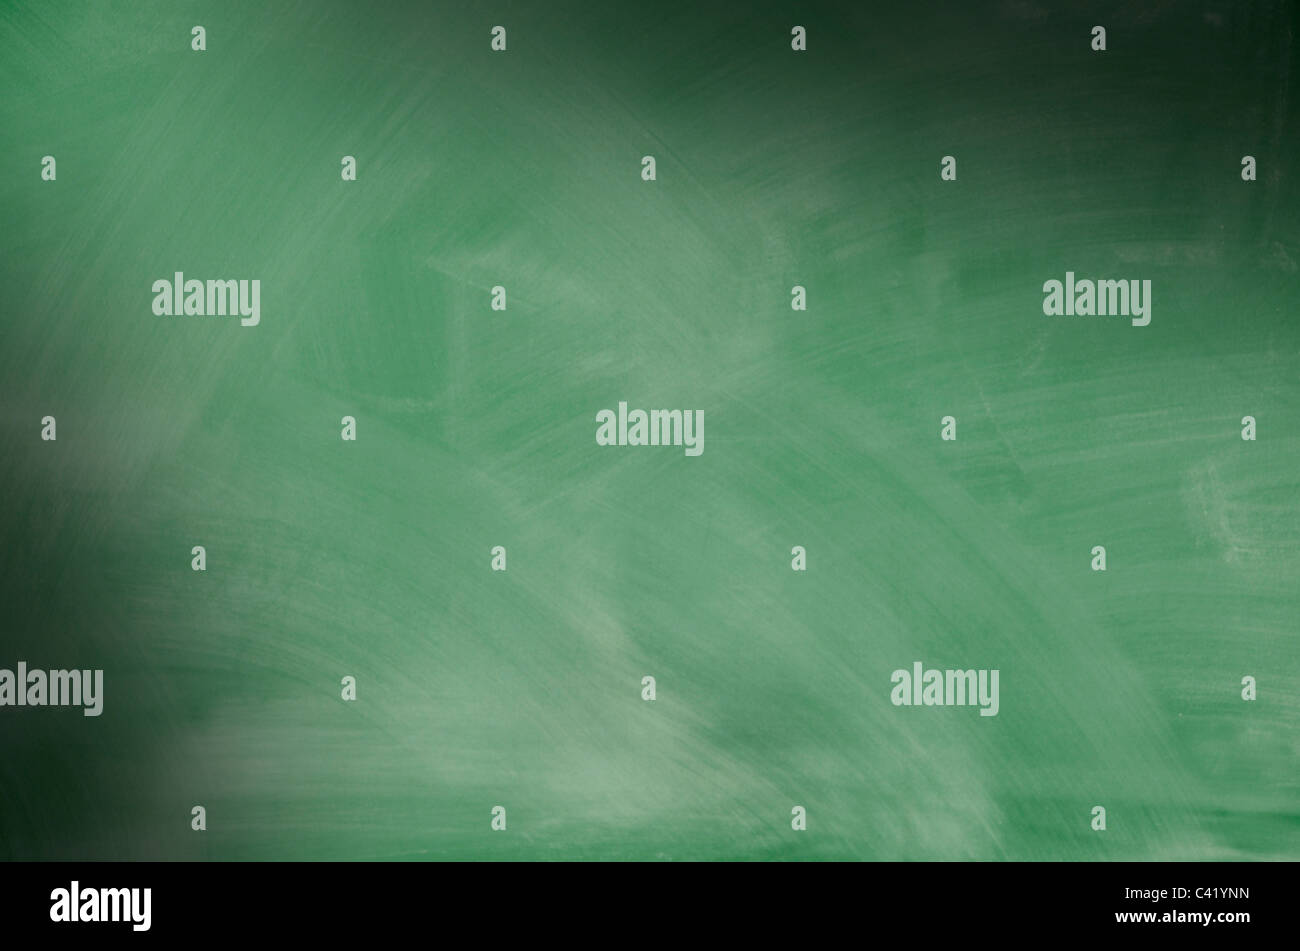 Green chalkboard with smeared chalk eraser marks lit diagonally - Stock Image